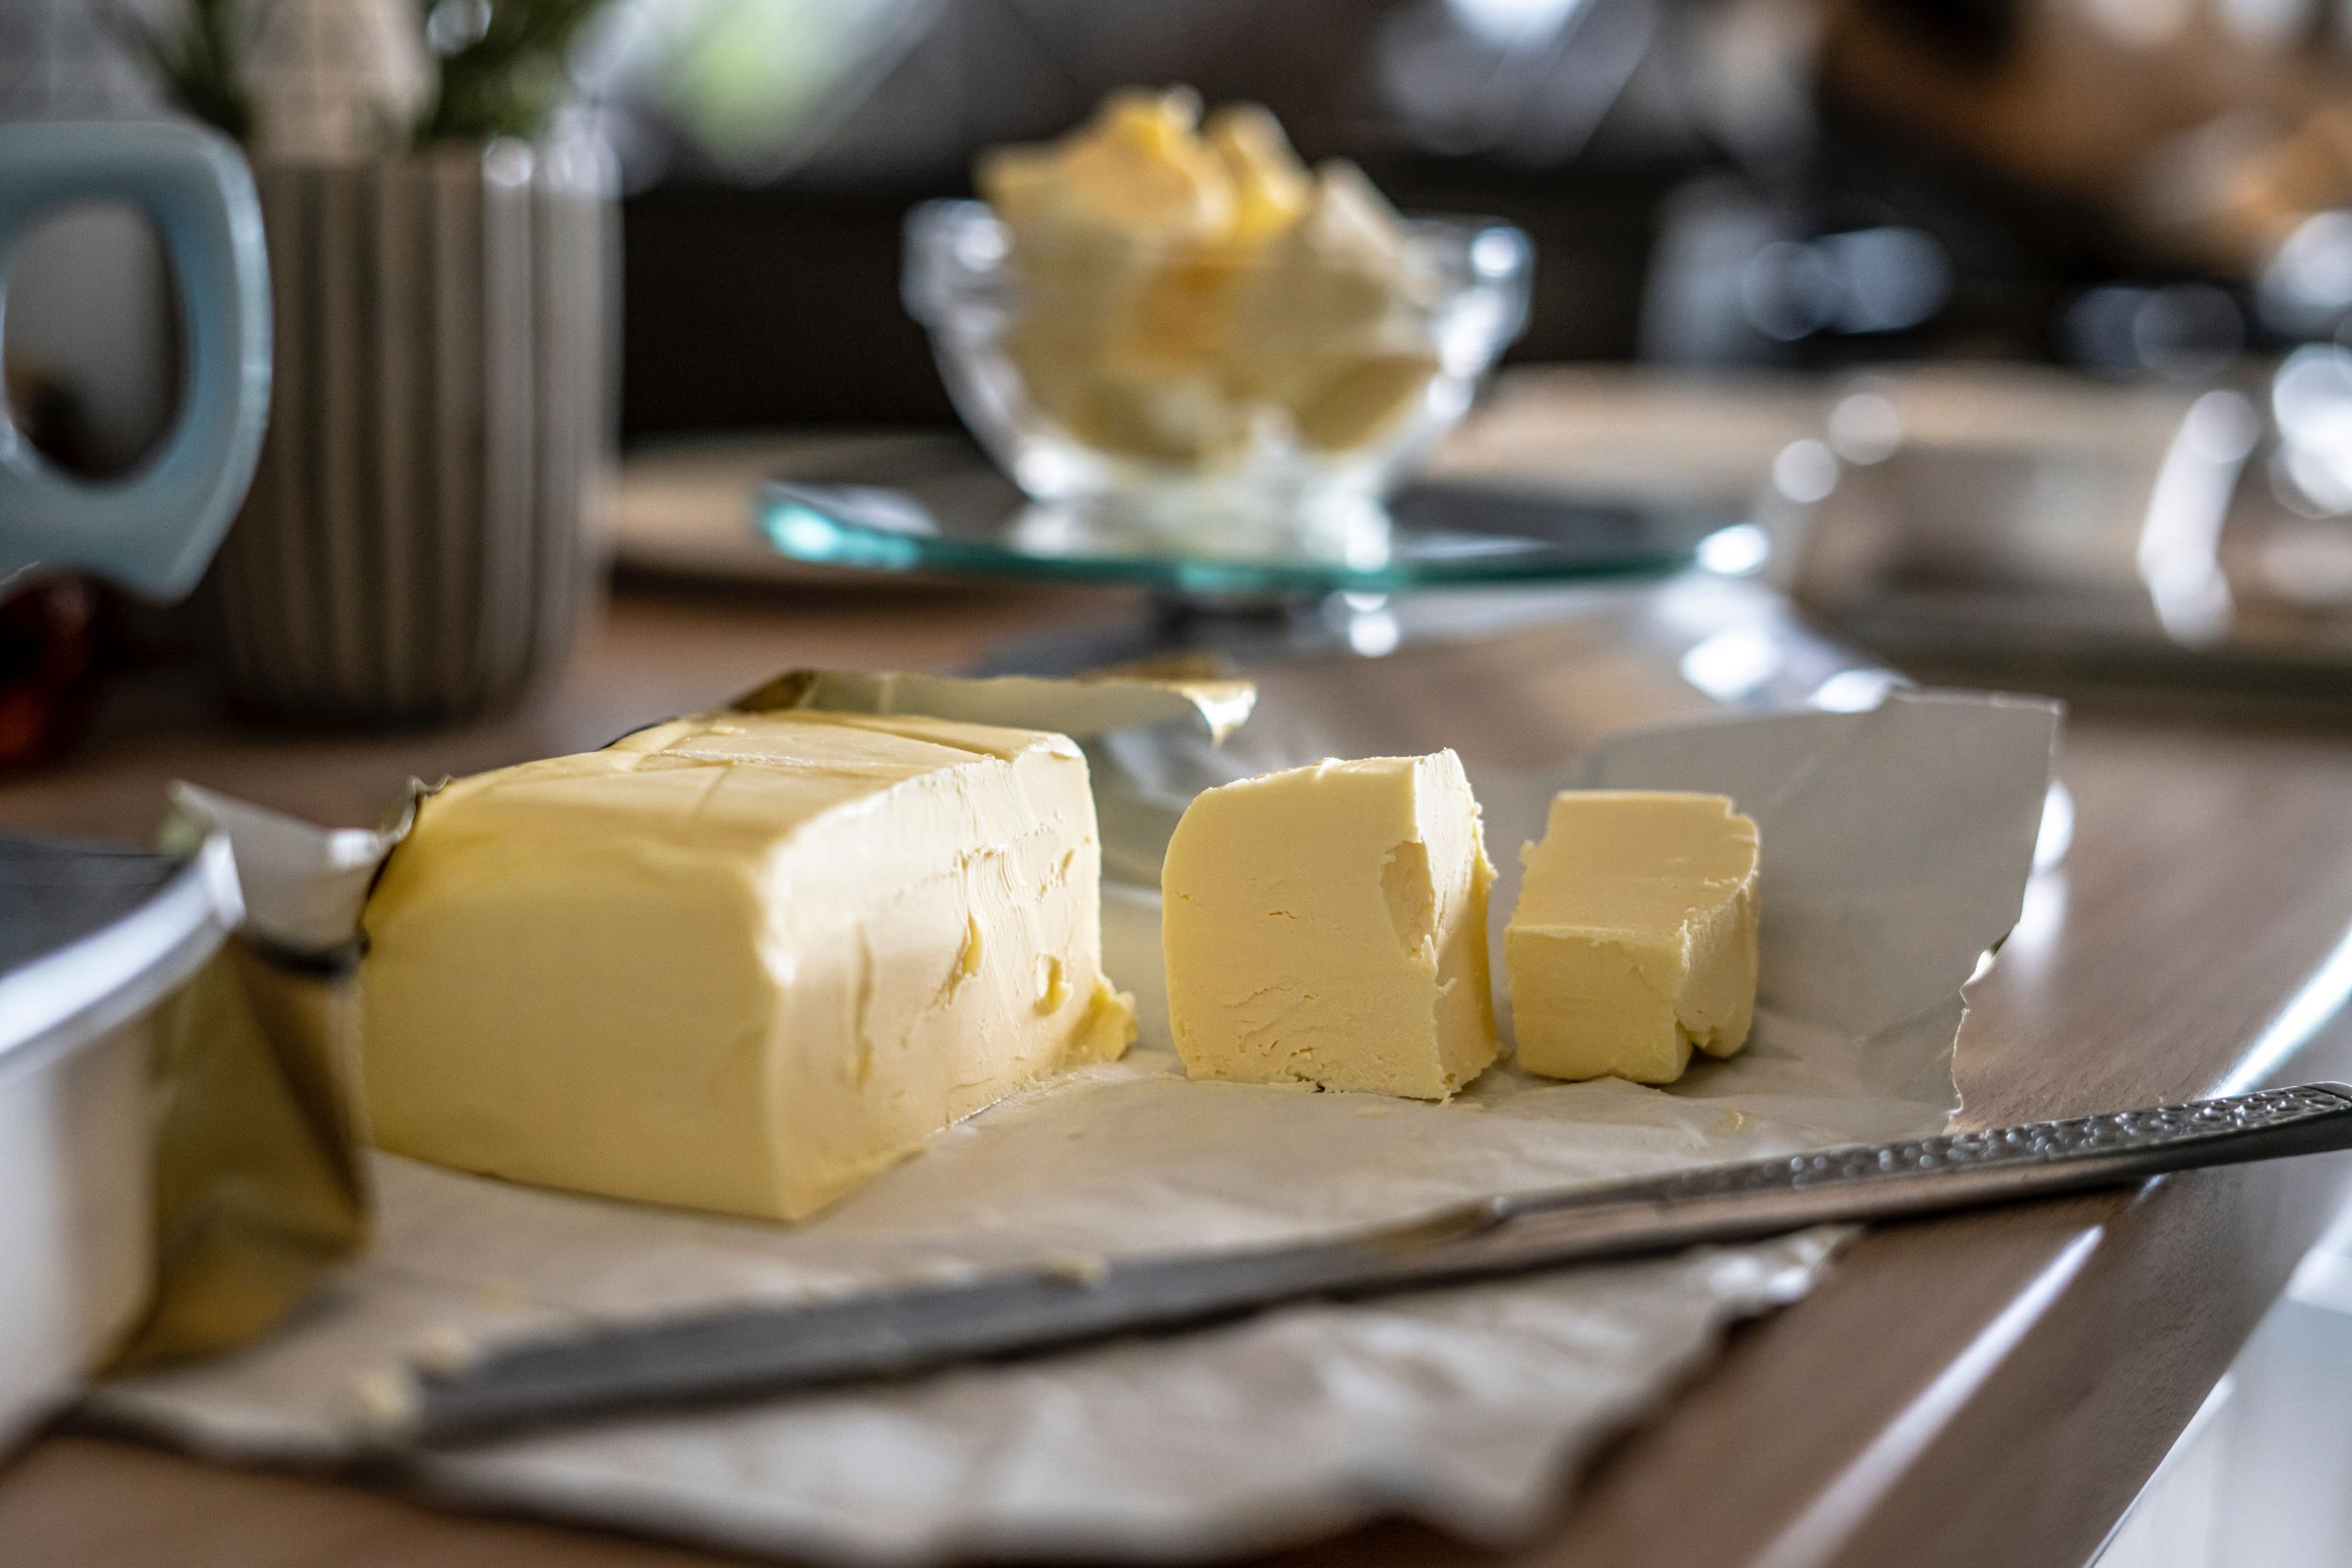 butter on a white plate cut into slices with a knife in the foreground